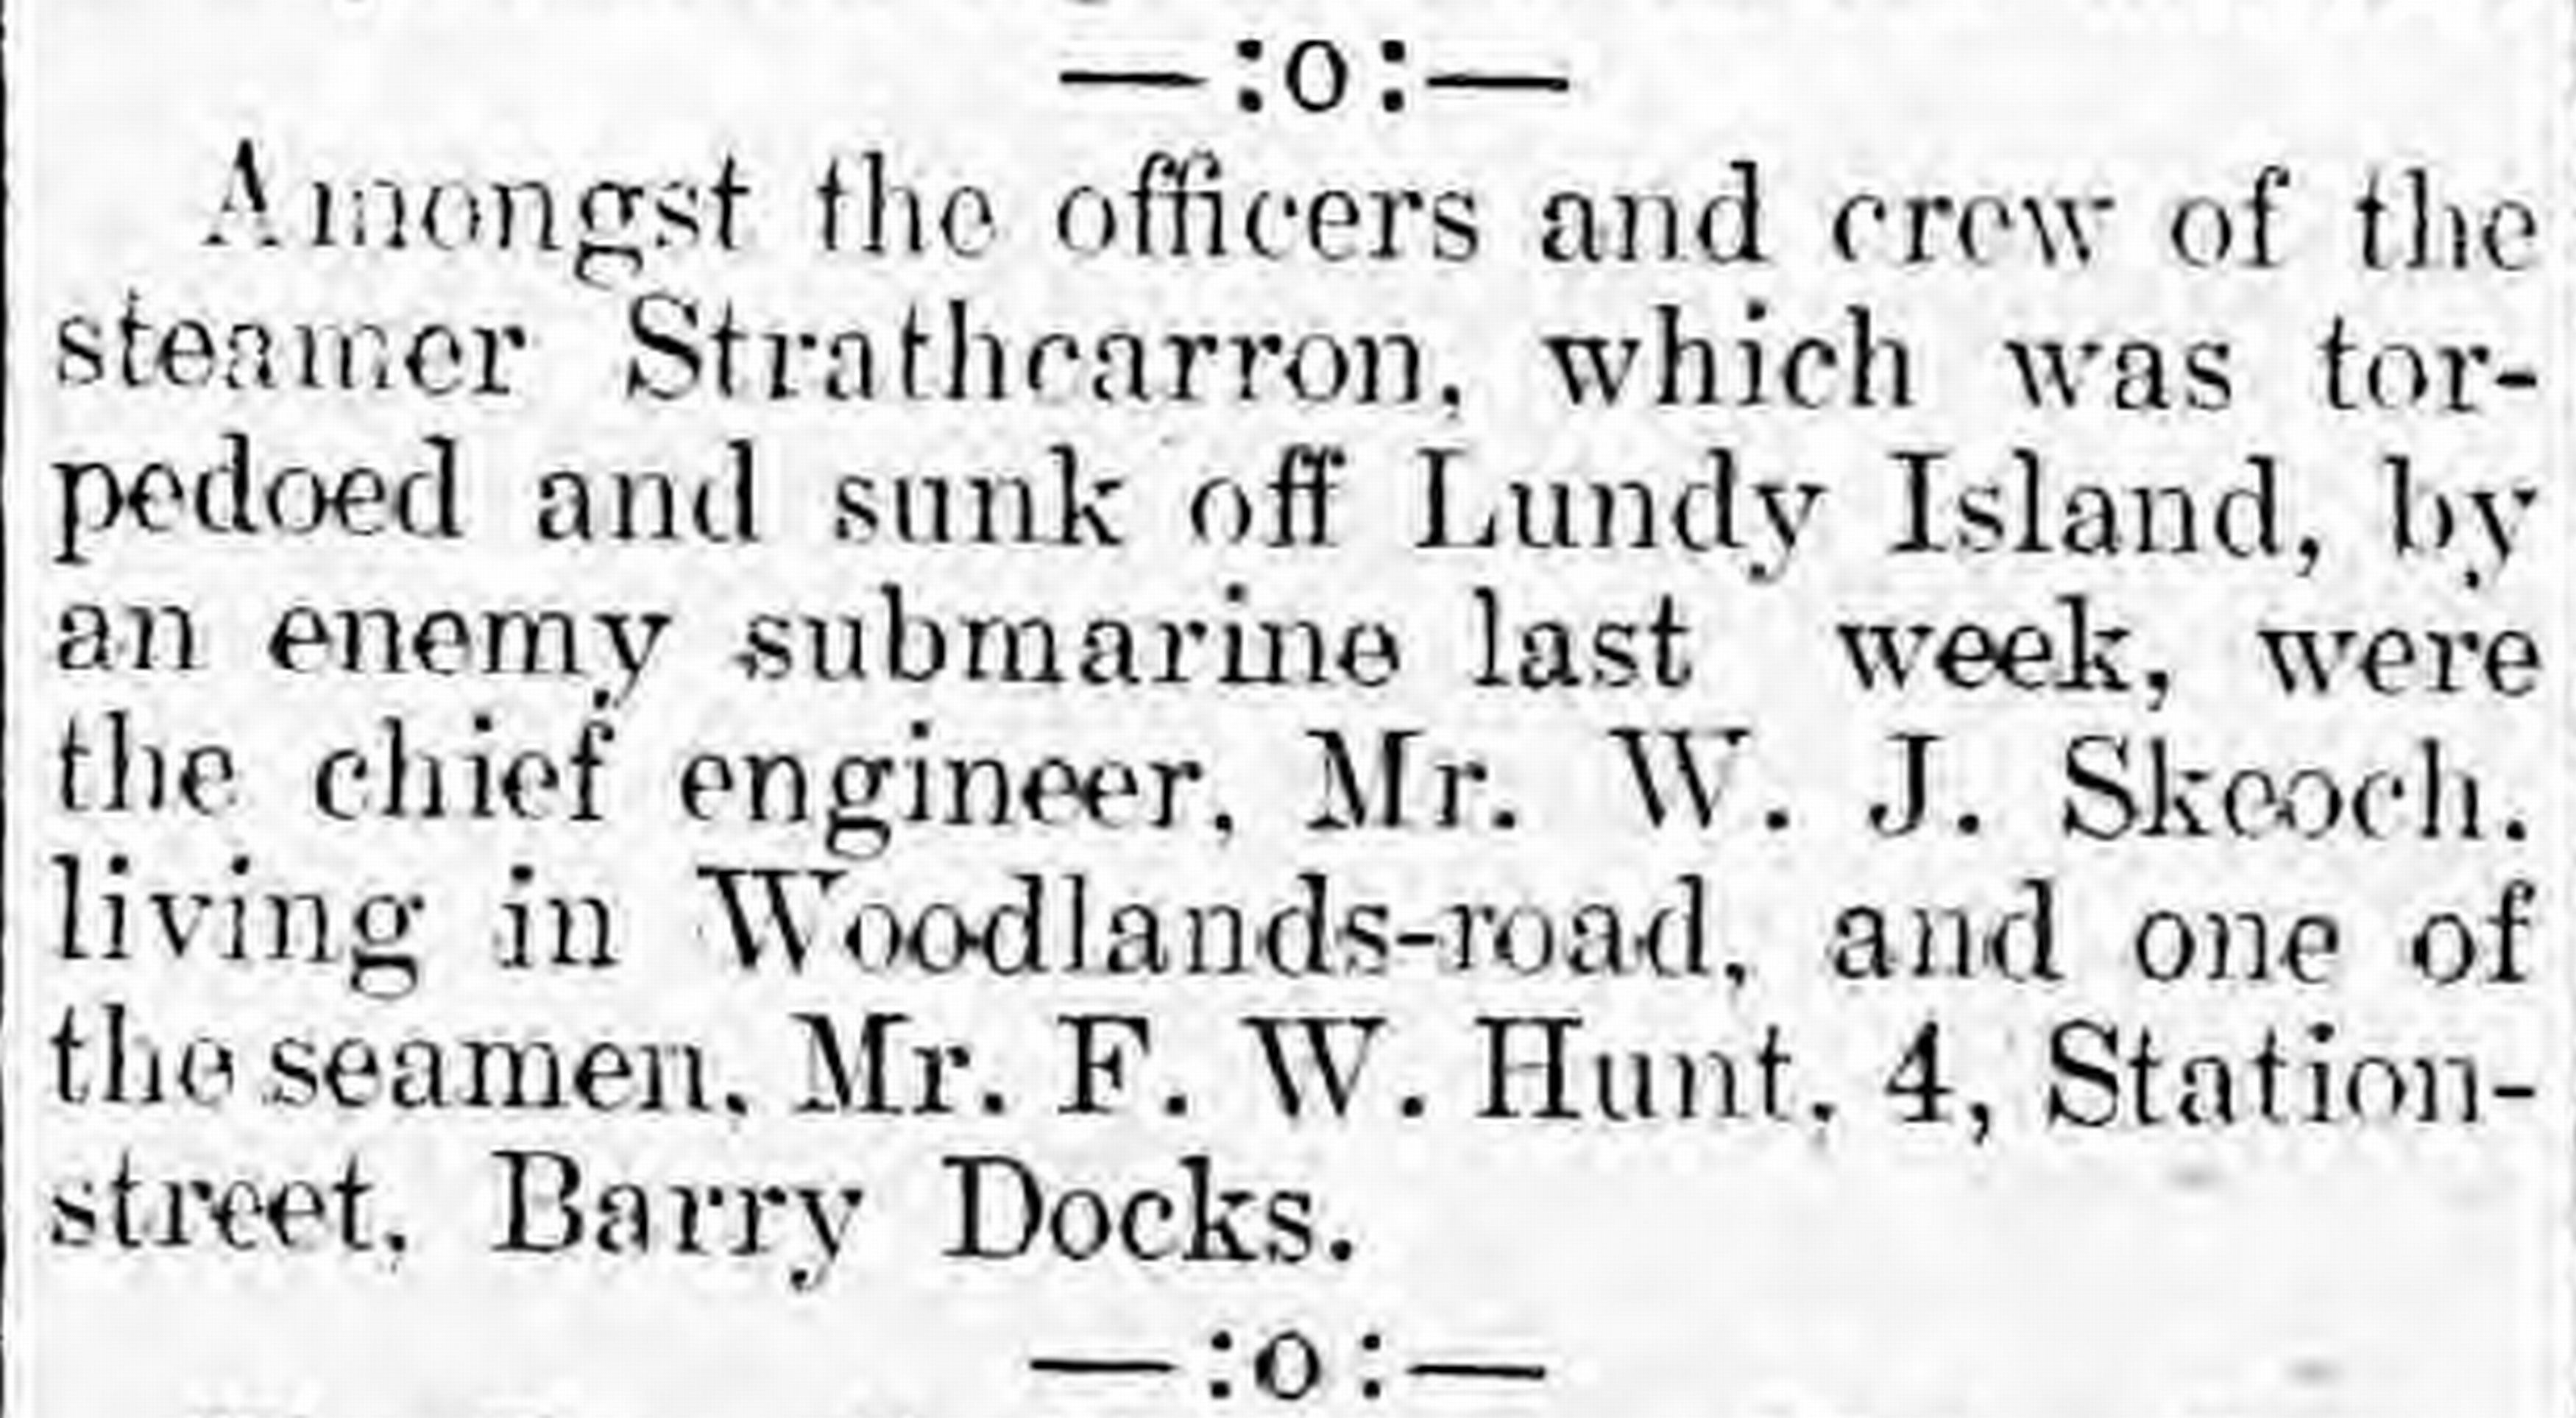 A small feature in the 'Mrs Grundy's Jottings' column of the Barry Dock News, 18 June 1915, notes that two of the crew members of the STRATH CARRON were residents of Barry. http://newspapers.library.wales/view/4130135/4130140